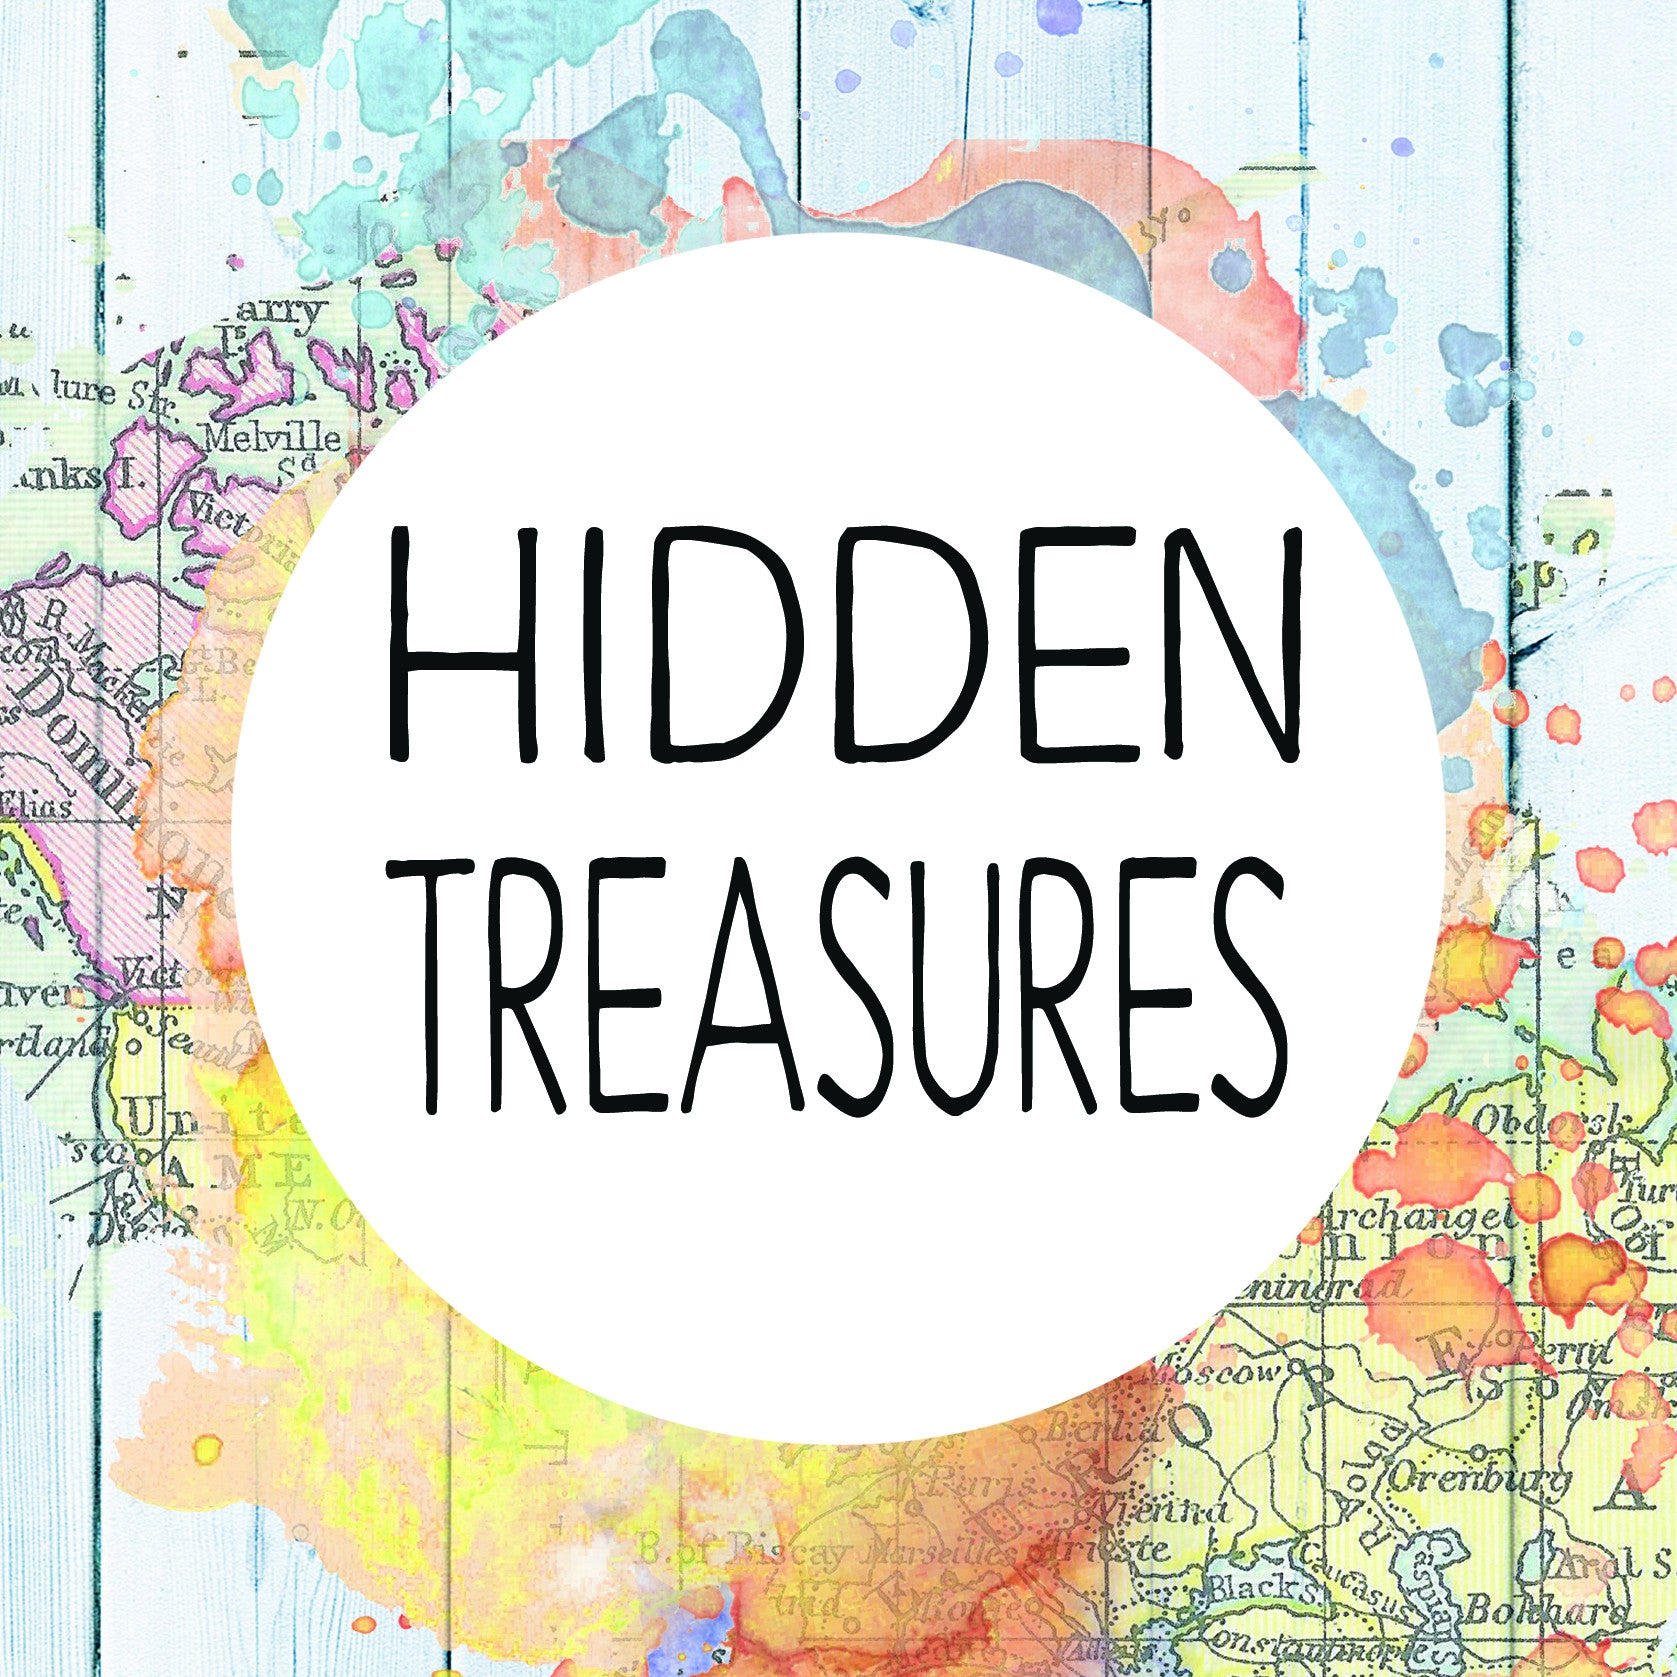 Bookishly's Hidden Treasures - Part Five